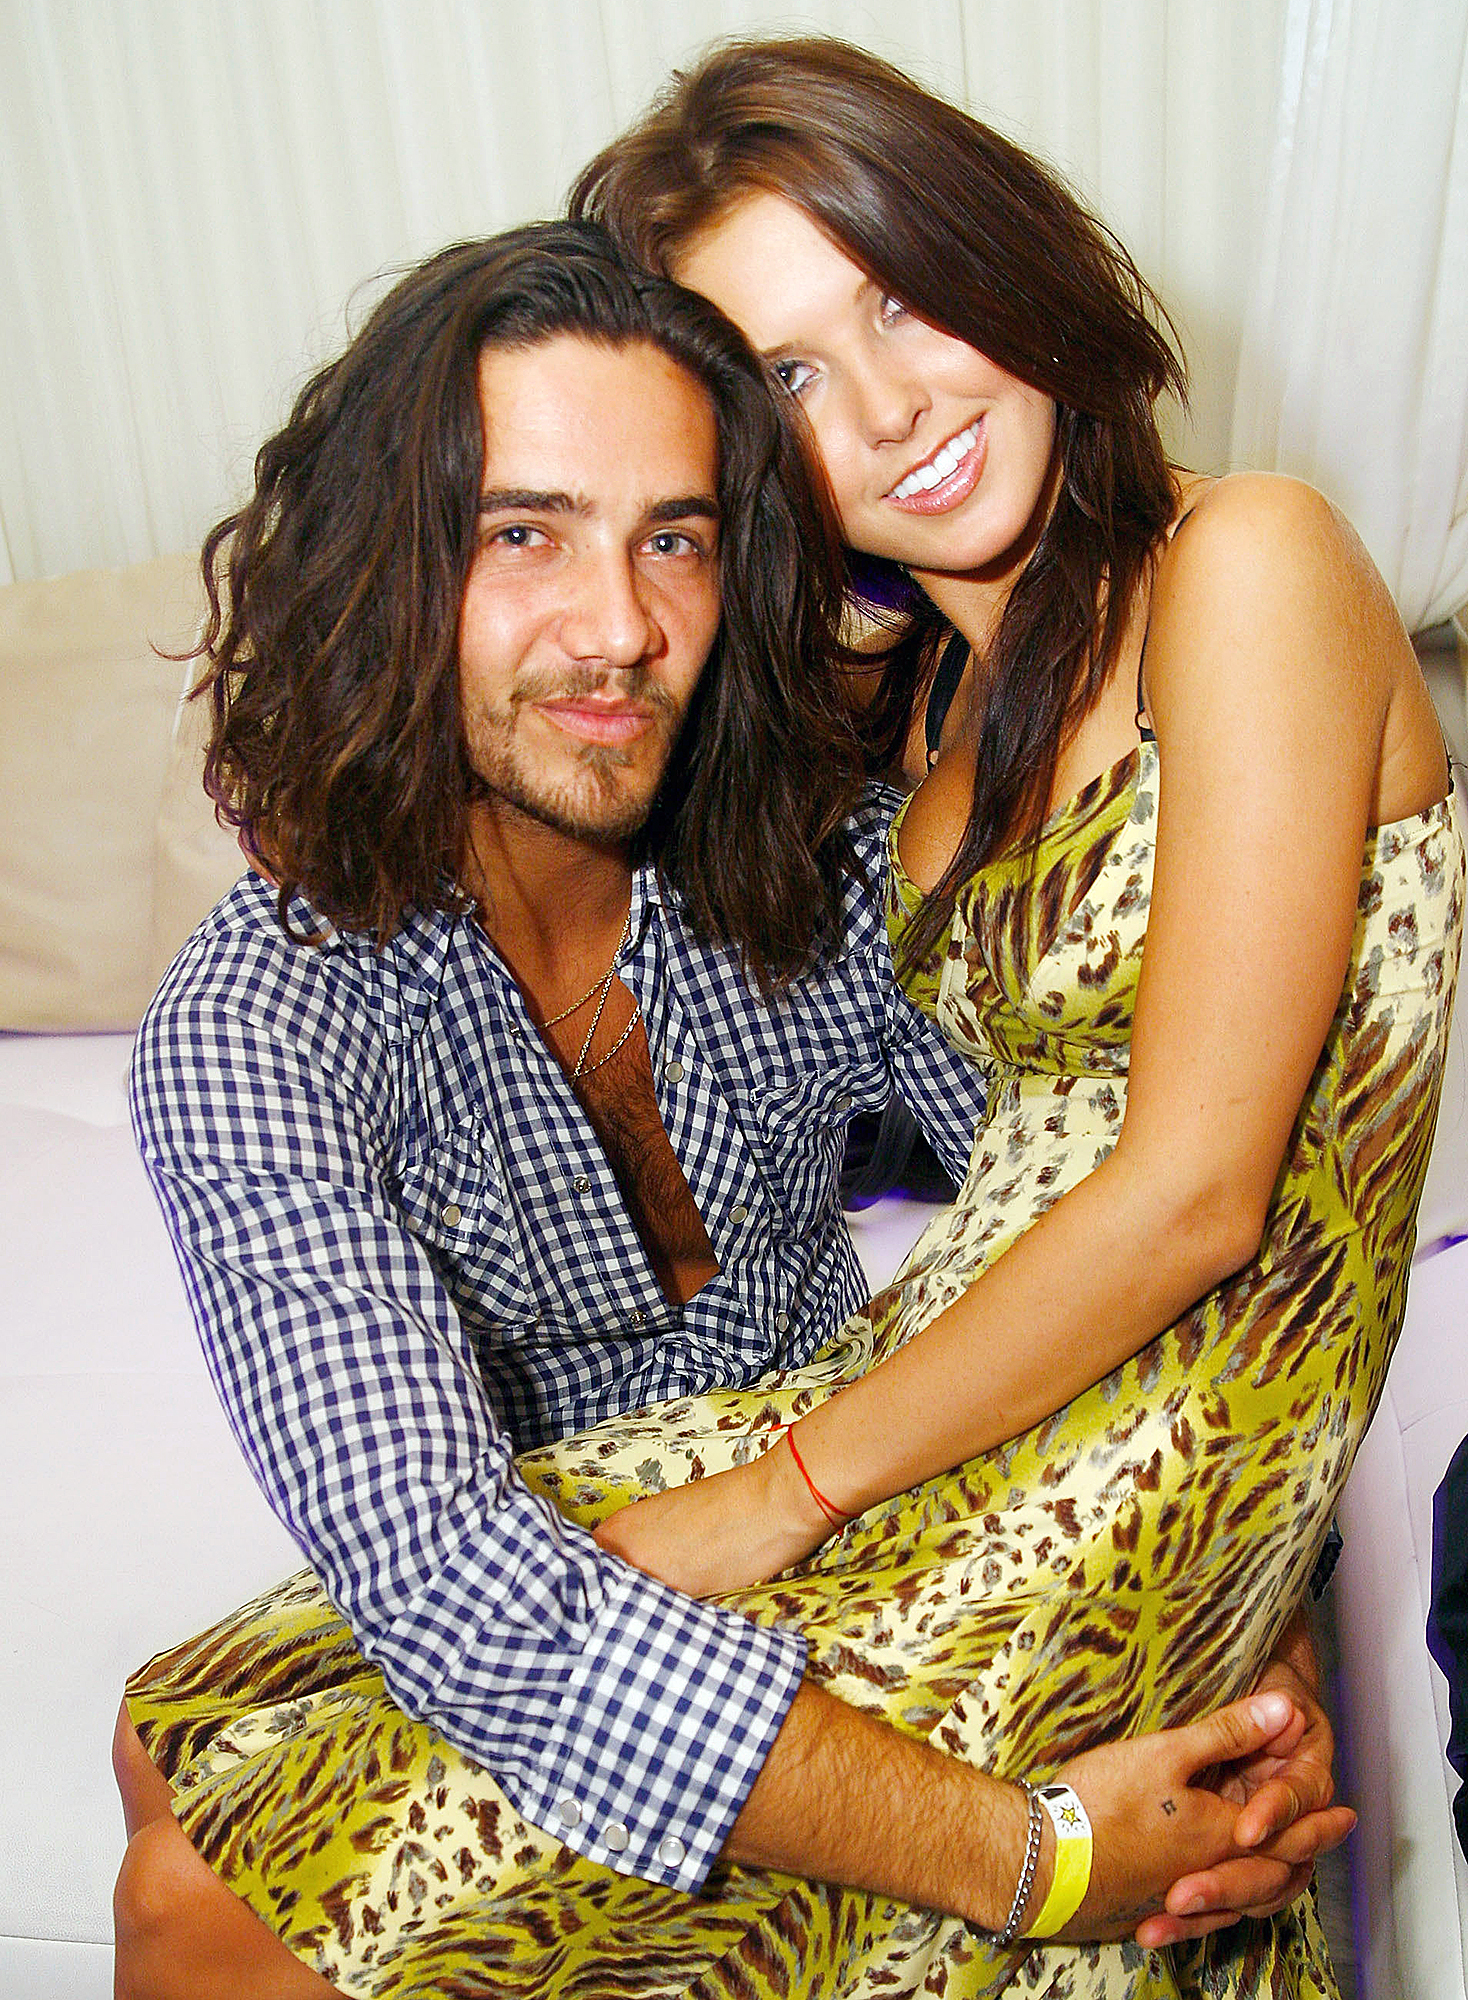 Justin Bobby Audrina Patridge The Hills Reunion VMAs 2018 - Justin Bobby and Audrina Patridge attend Brody Jenner's birthday party at PURE Nightclub on August 18, 2007 in Las Vegas, Nevada.